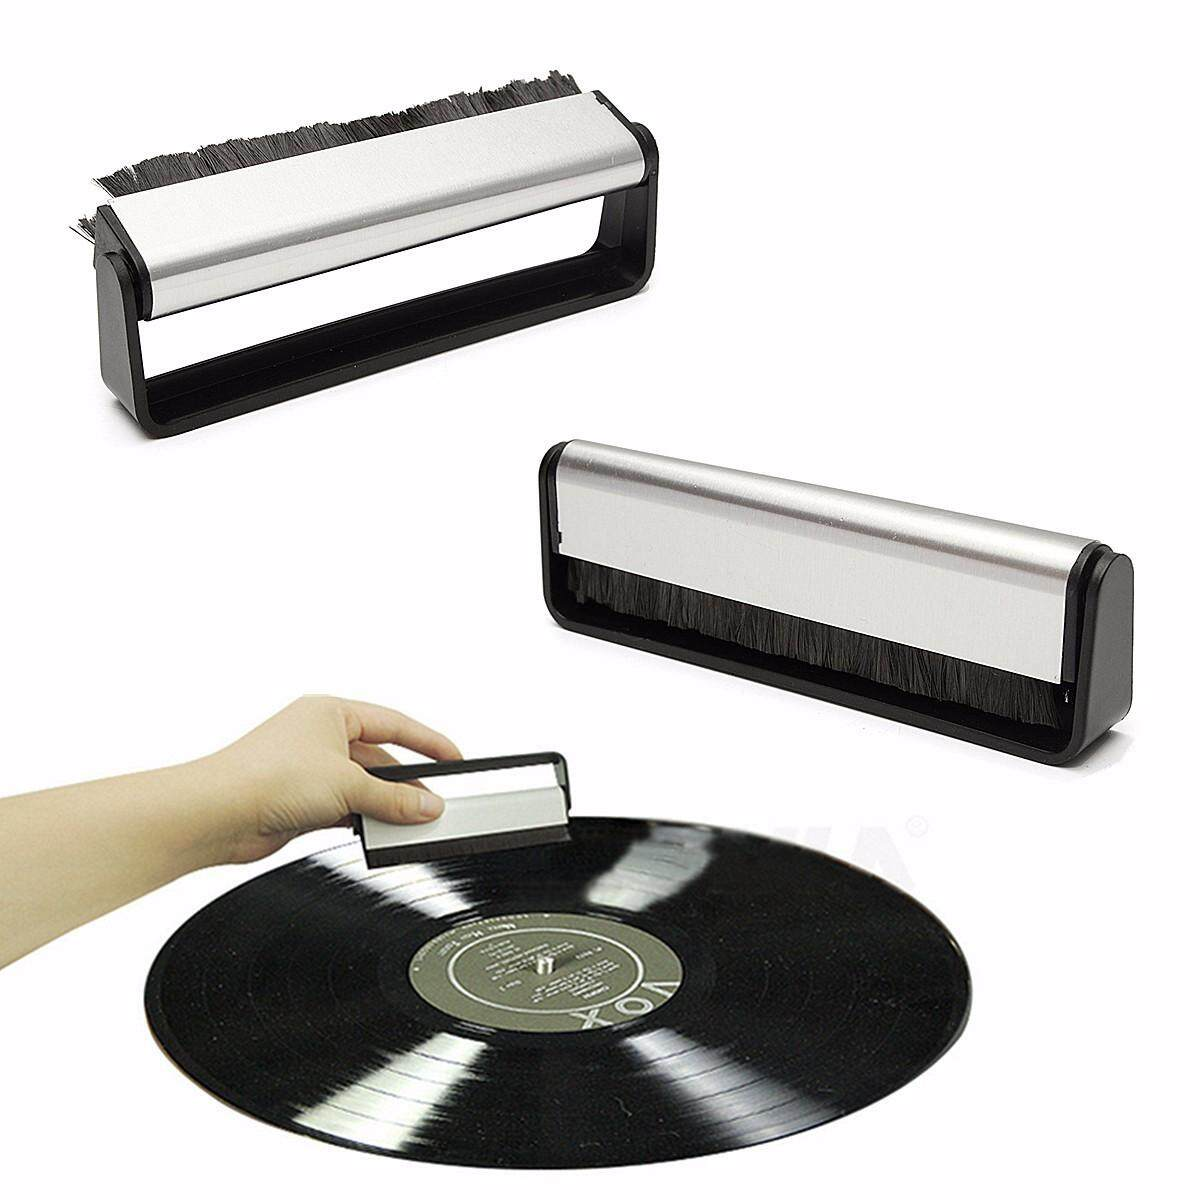 Anti-Static Vinyl Record Cleaning Cleaner Pad Brush Audio Stylus Dust Remover By Moonbeam.